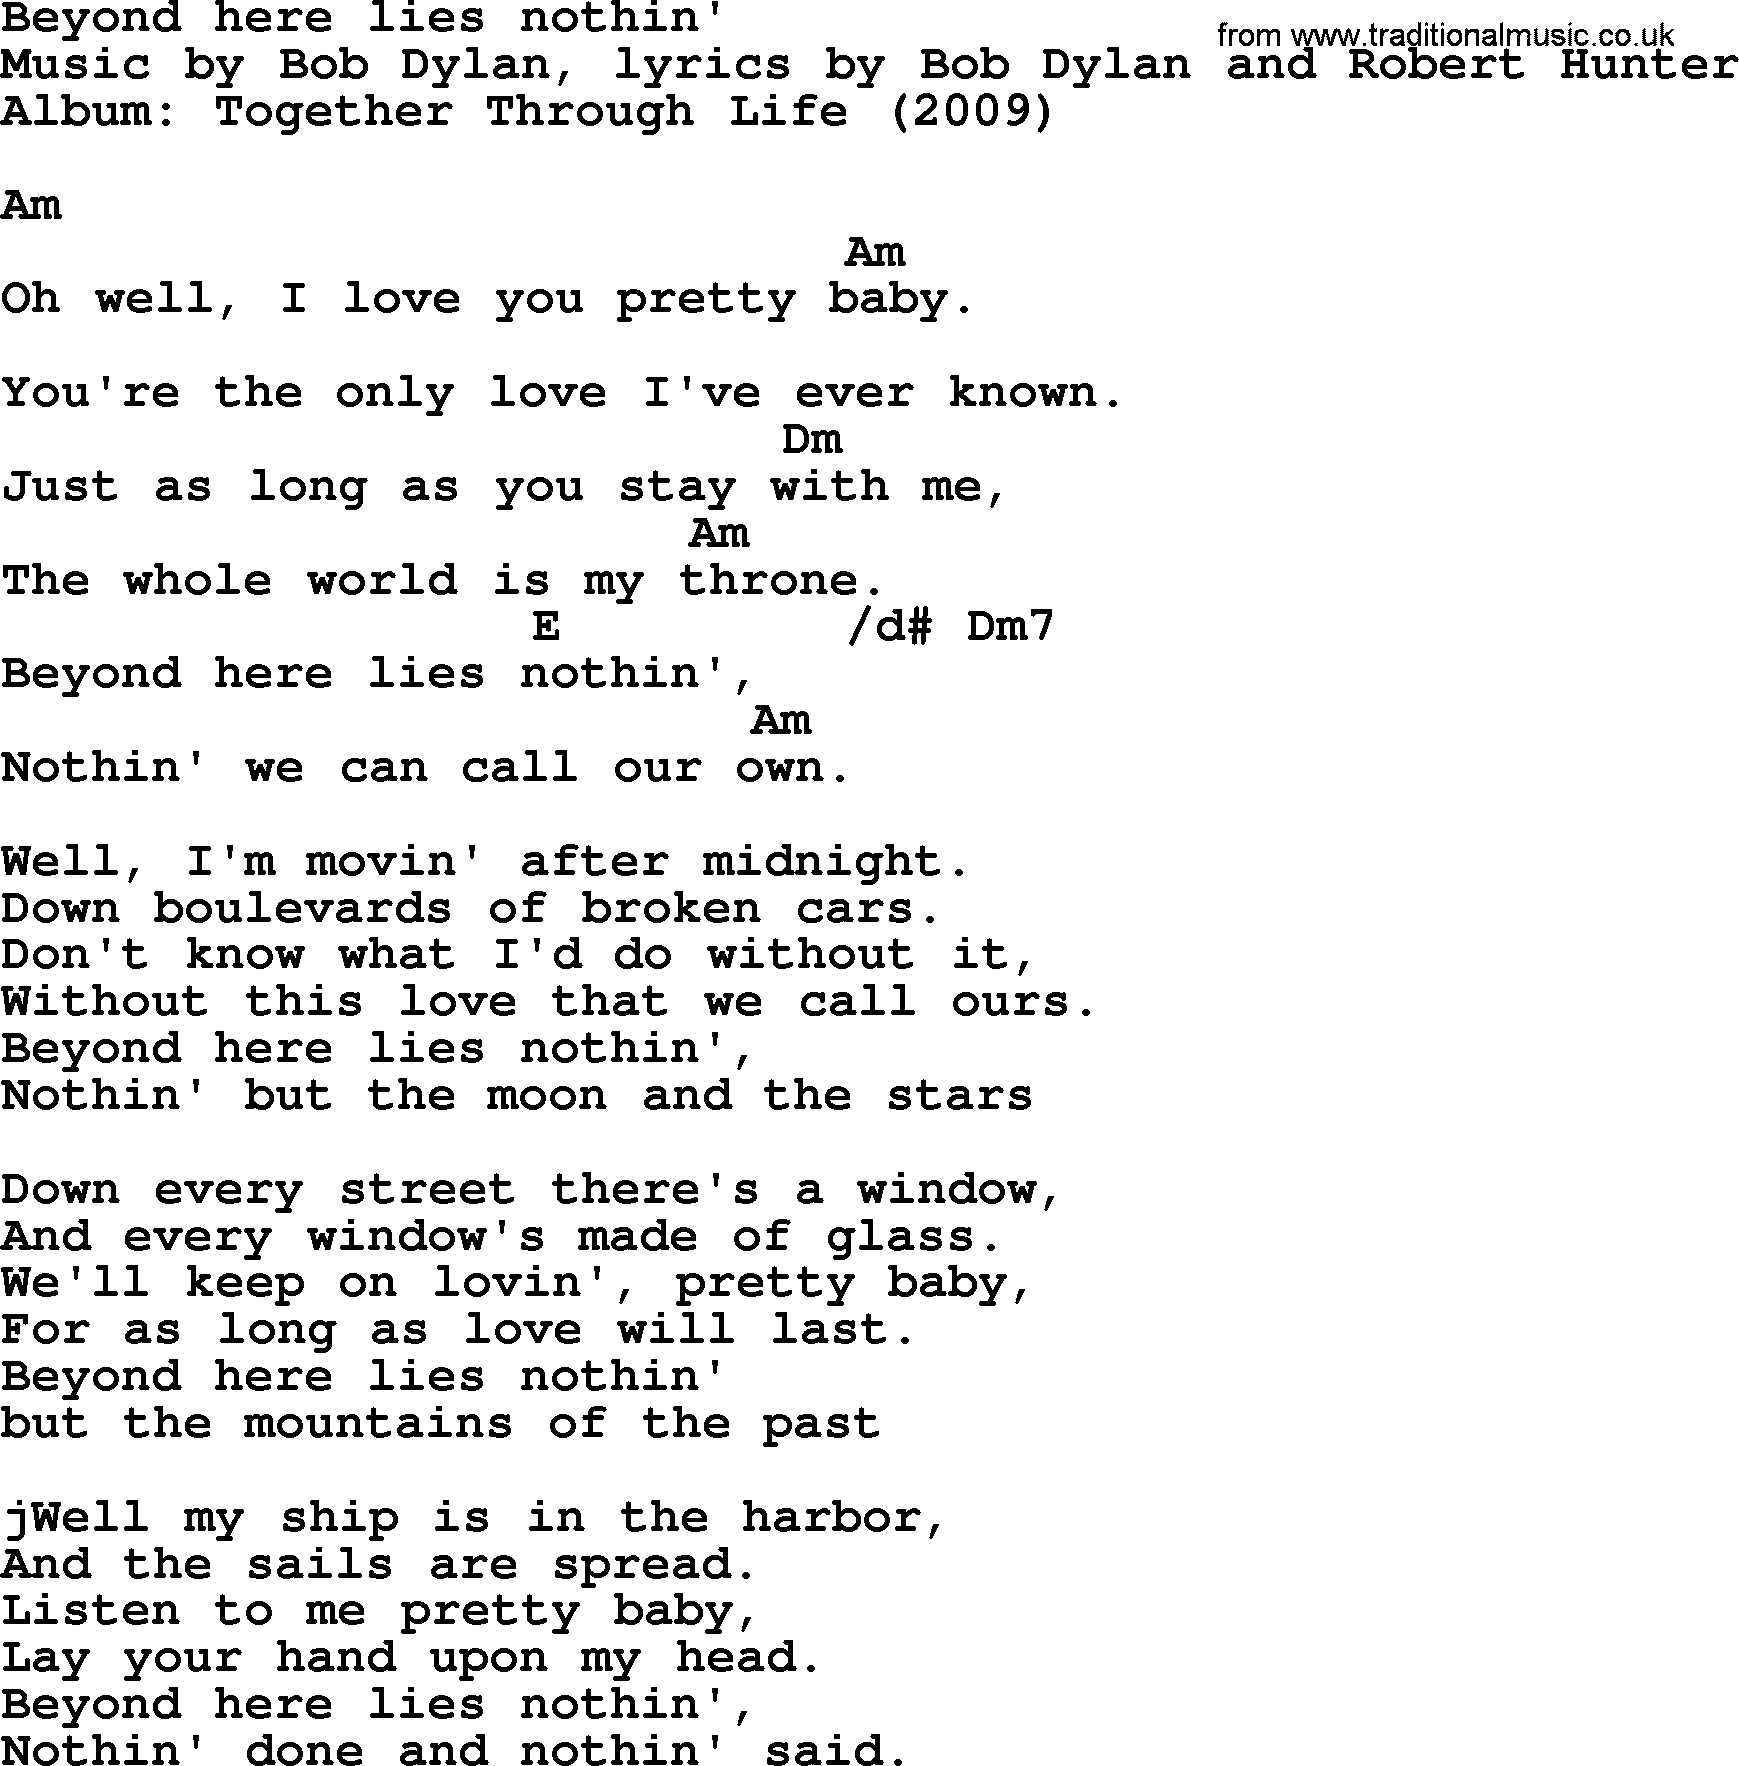 Bob Dylan Song Beyond Here Lies Nothin Lyrics And Chords